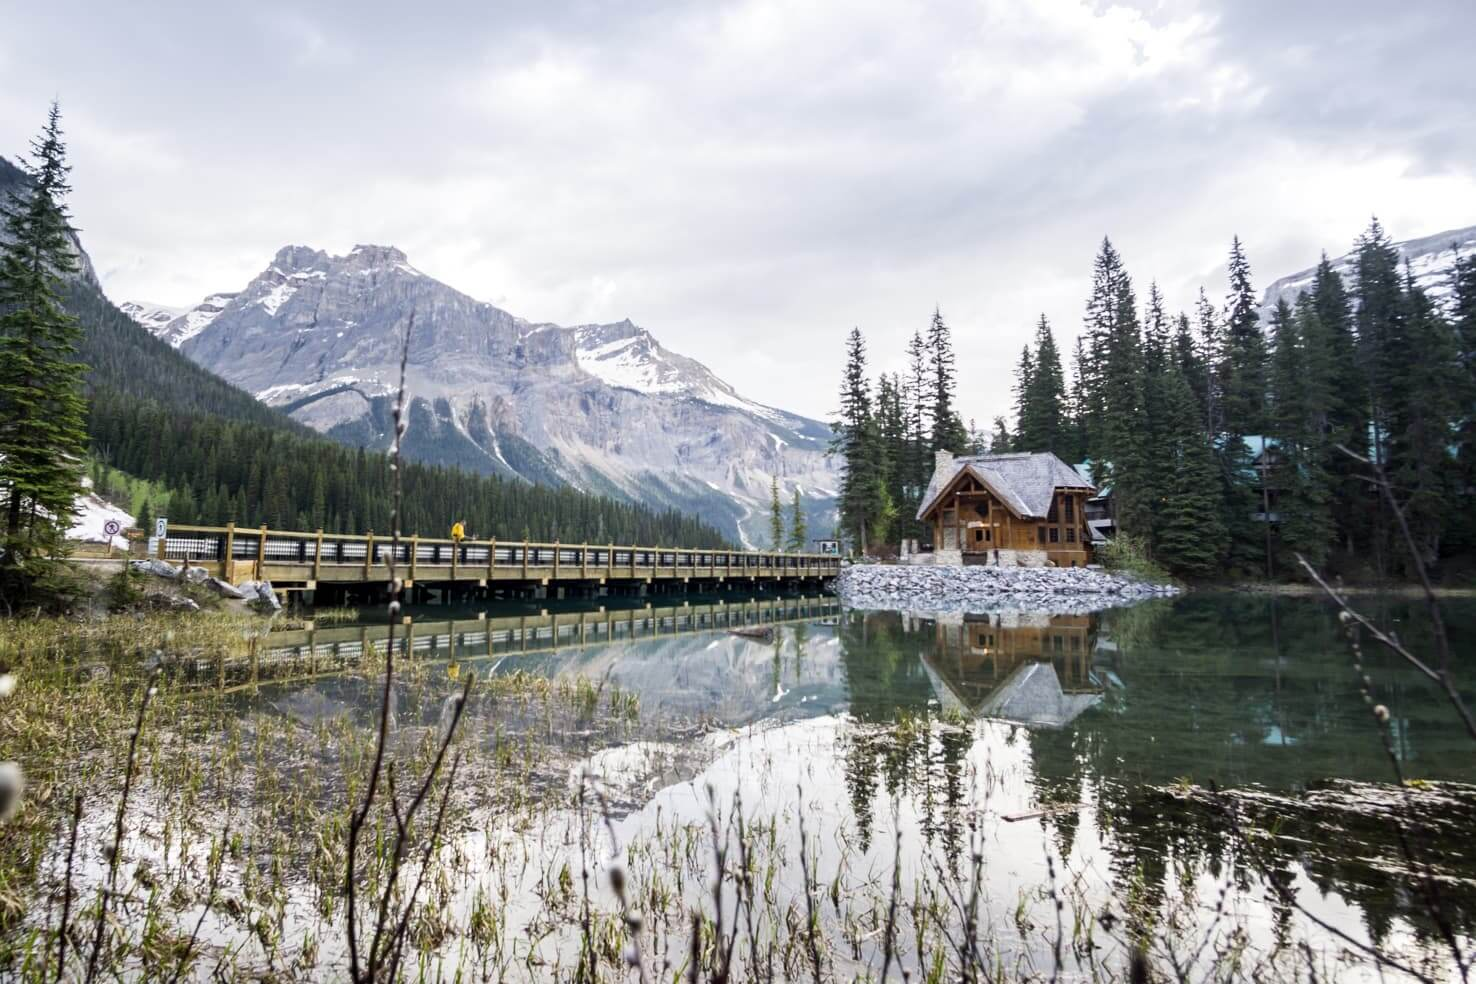 Adventure travel guide to Yoho National Park - Emerald Lake Lodge